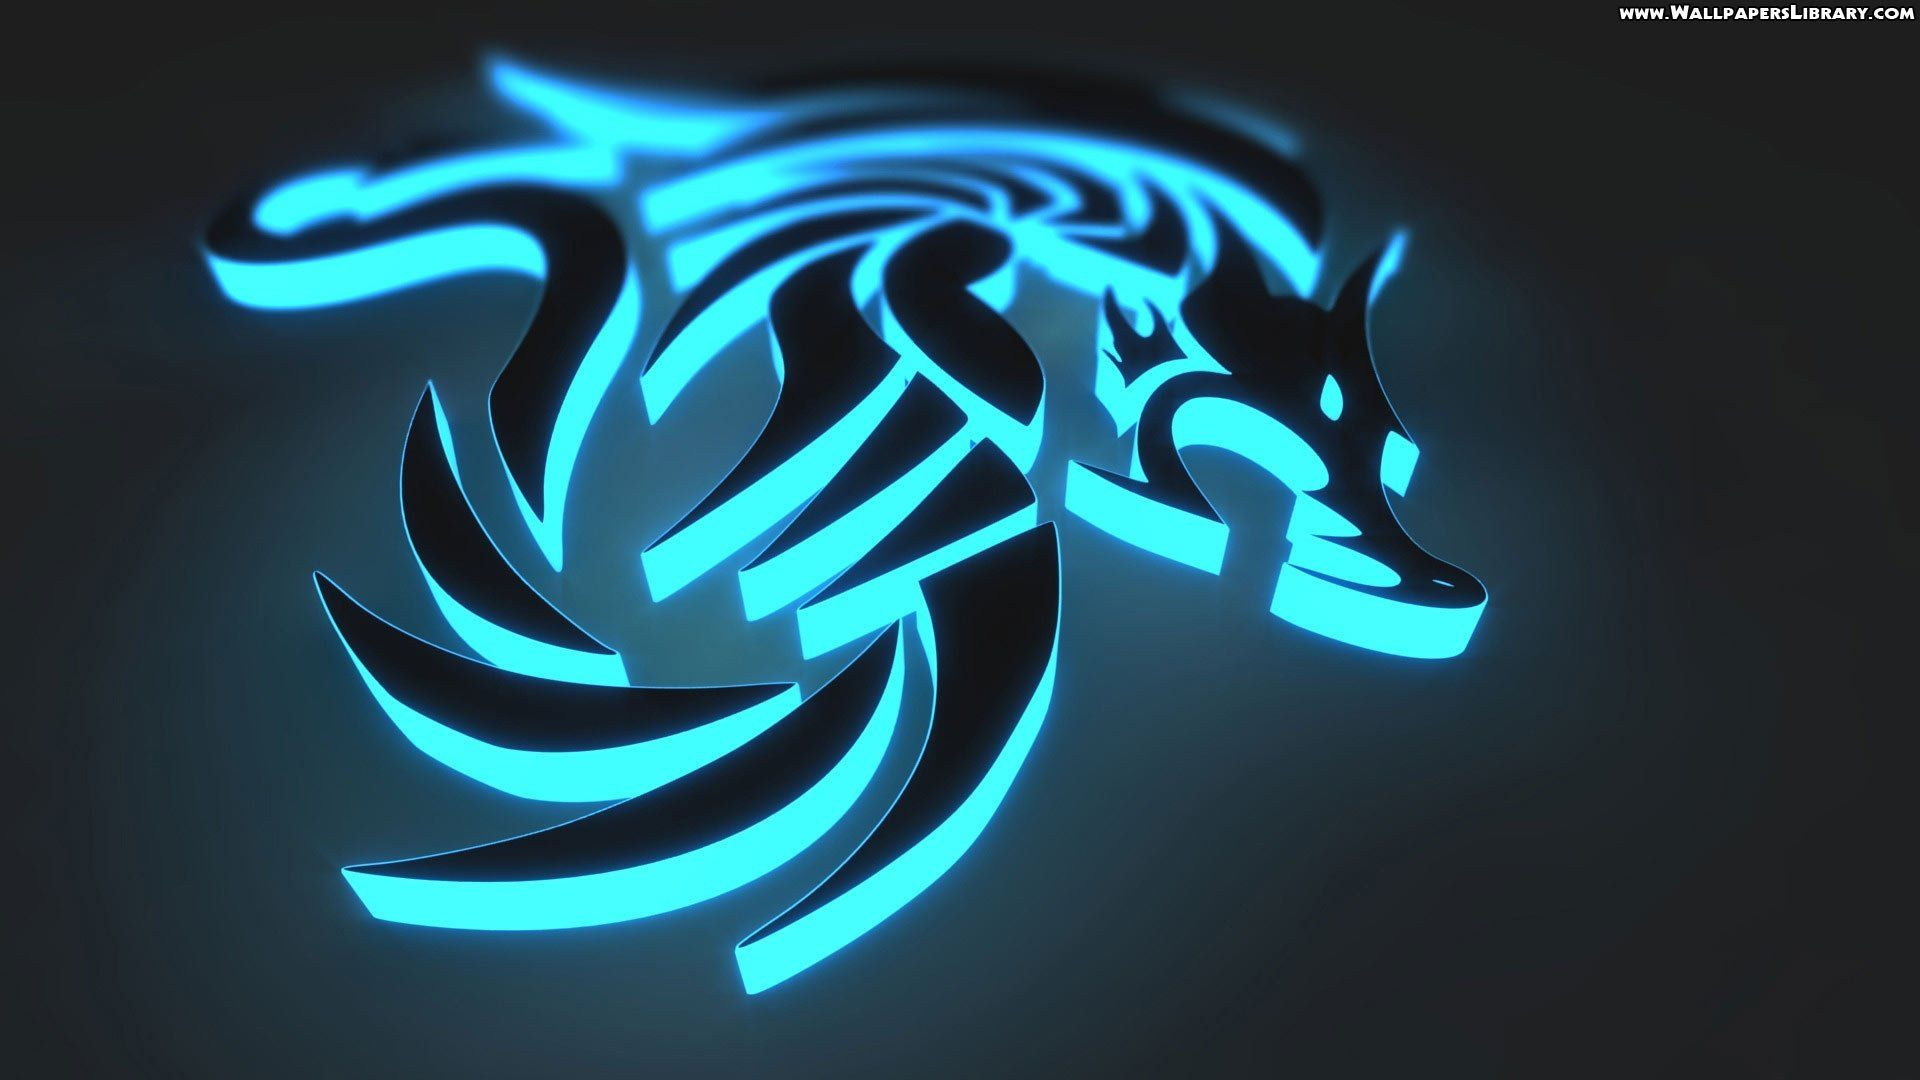 Related Image Hd Wallpapers For Laptop Dragon Tattoo Wallpaper Neon Wallpaper Live wallpaper dragon tattoo